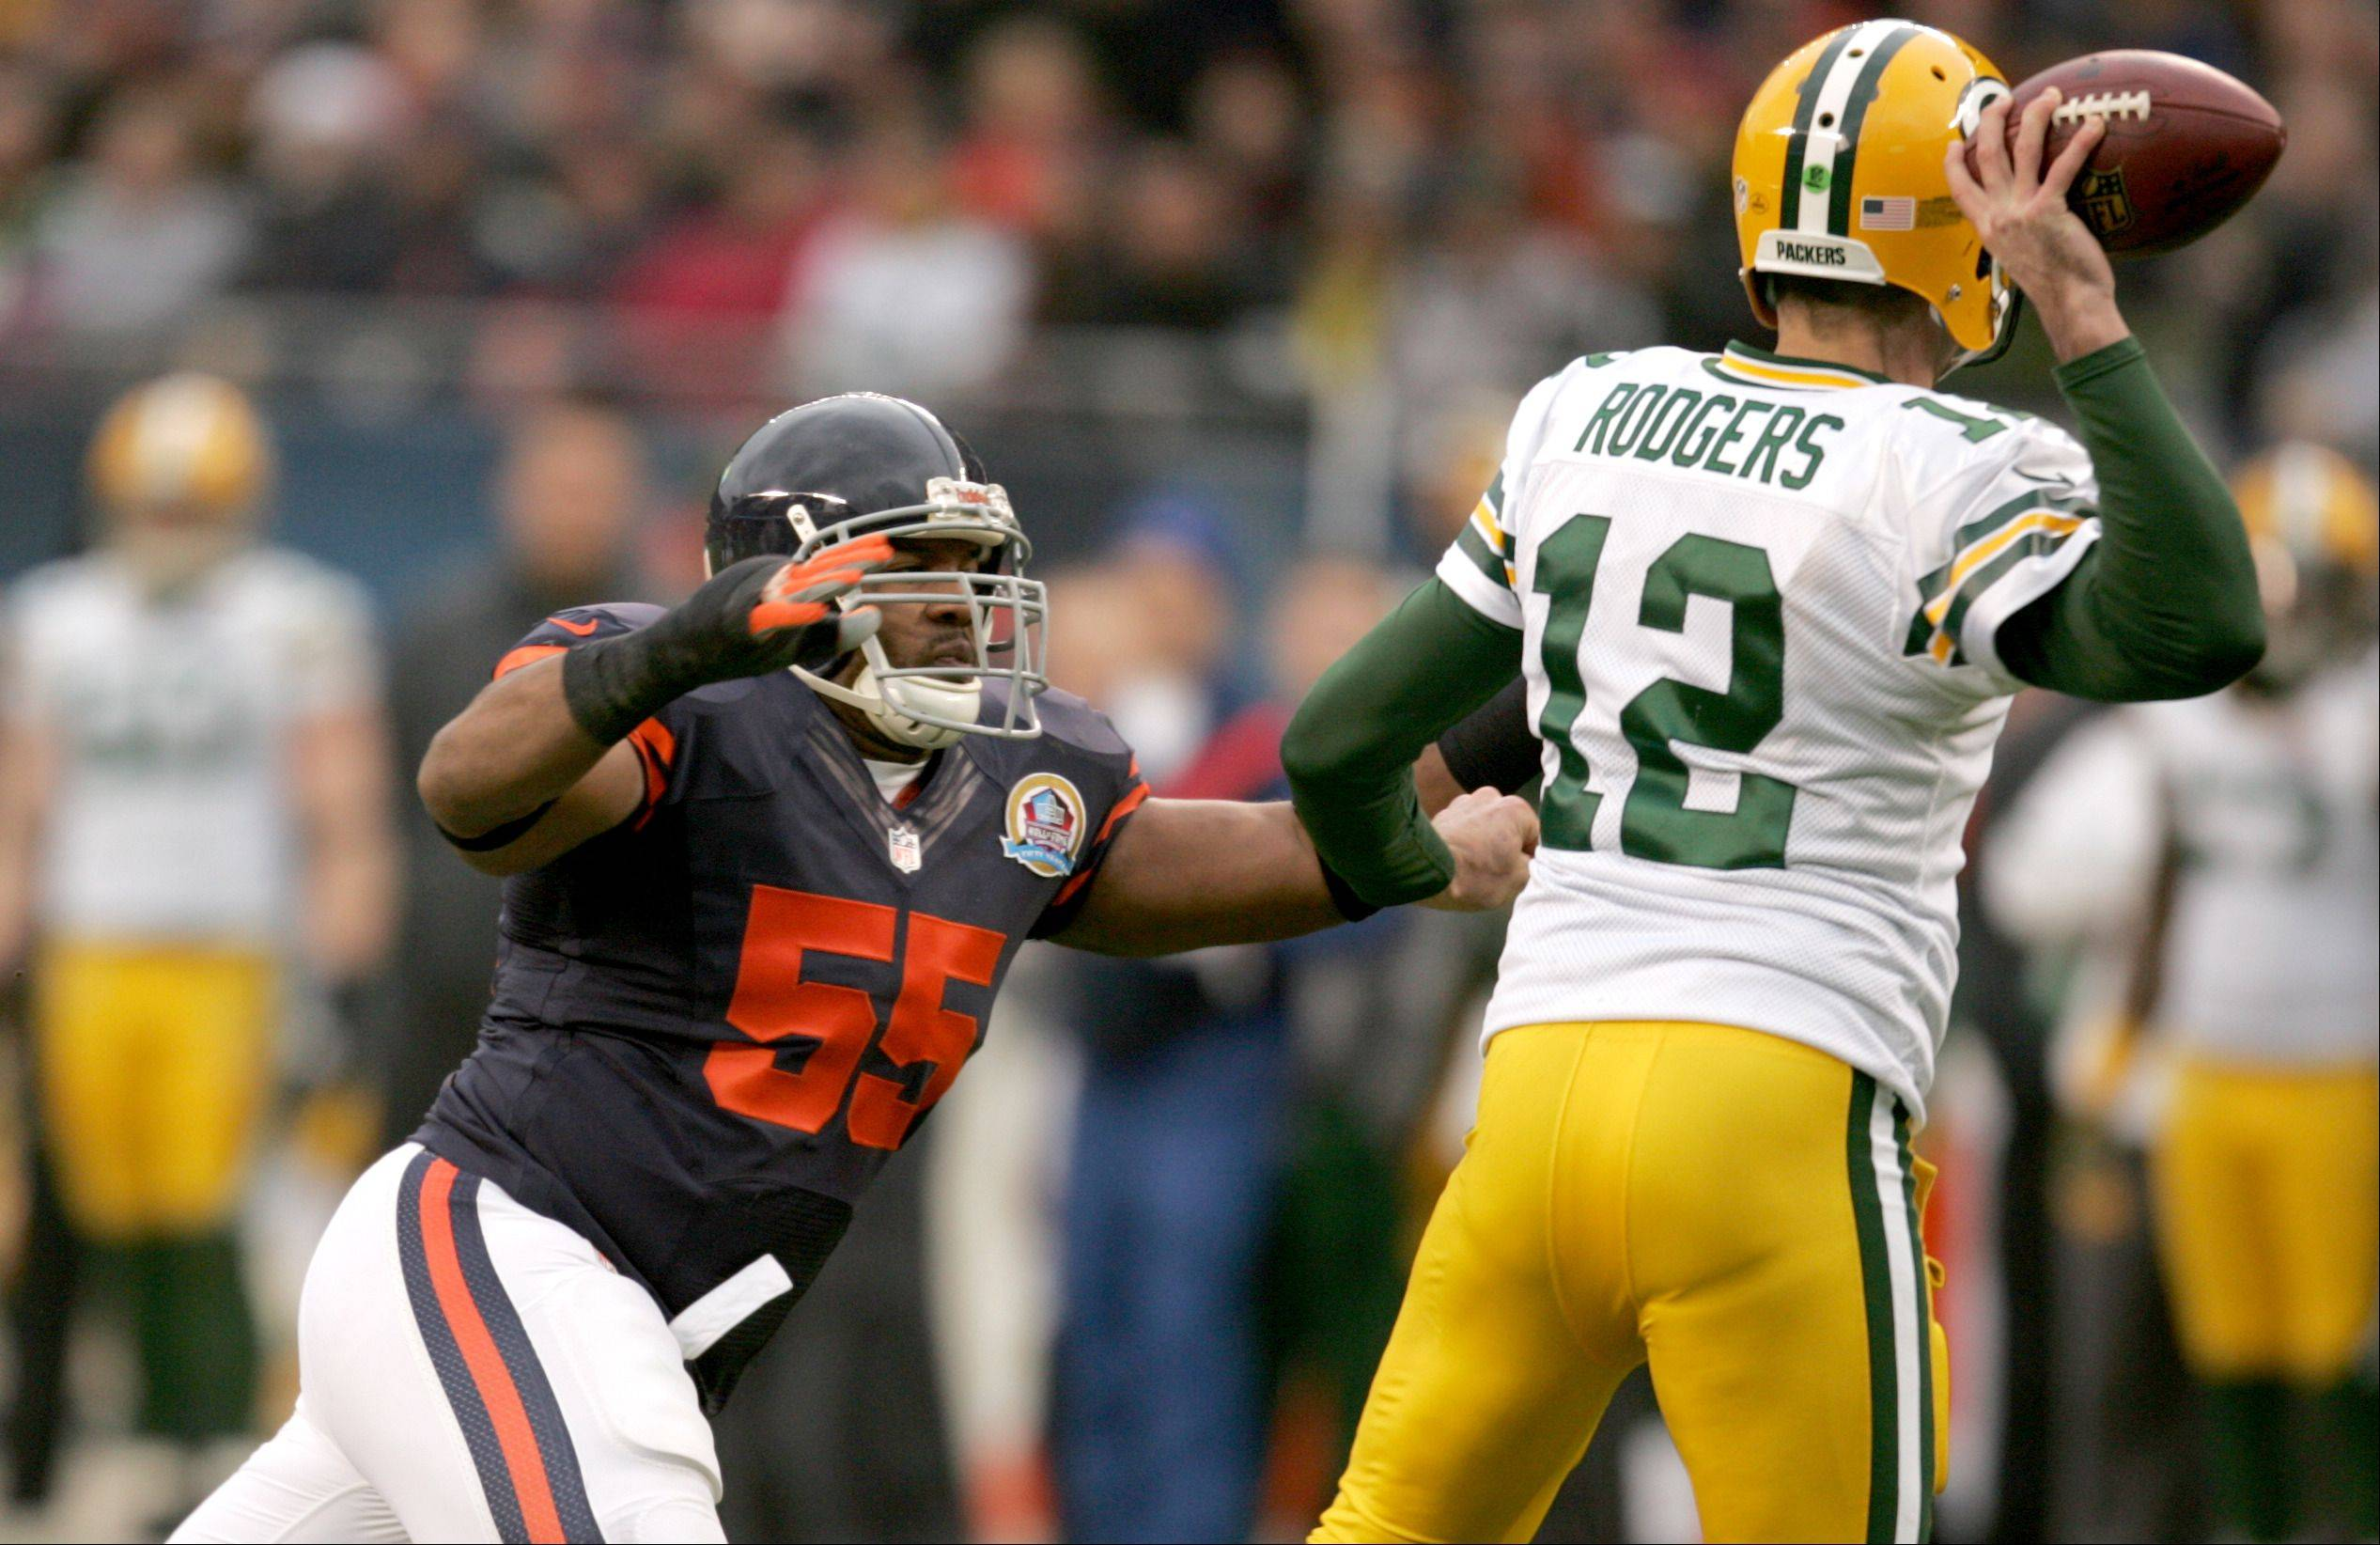 Chicago Bears outside linebacker Lance Briggs (55) tracks down Green Bay Packers quarterback Aaron Rodgers (12) during Sunday's game at Soldier Field in Chicago.